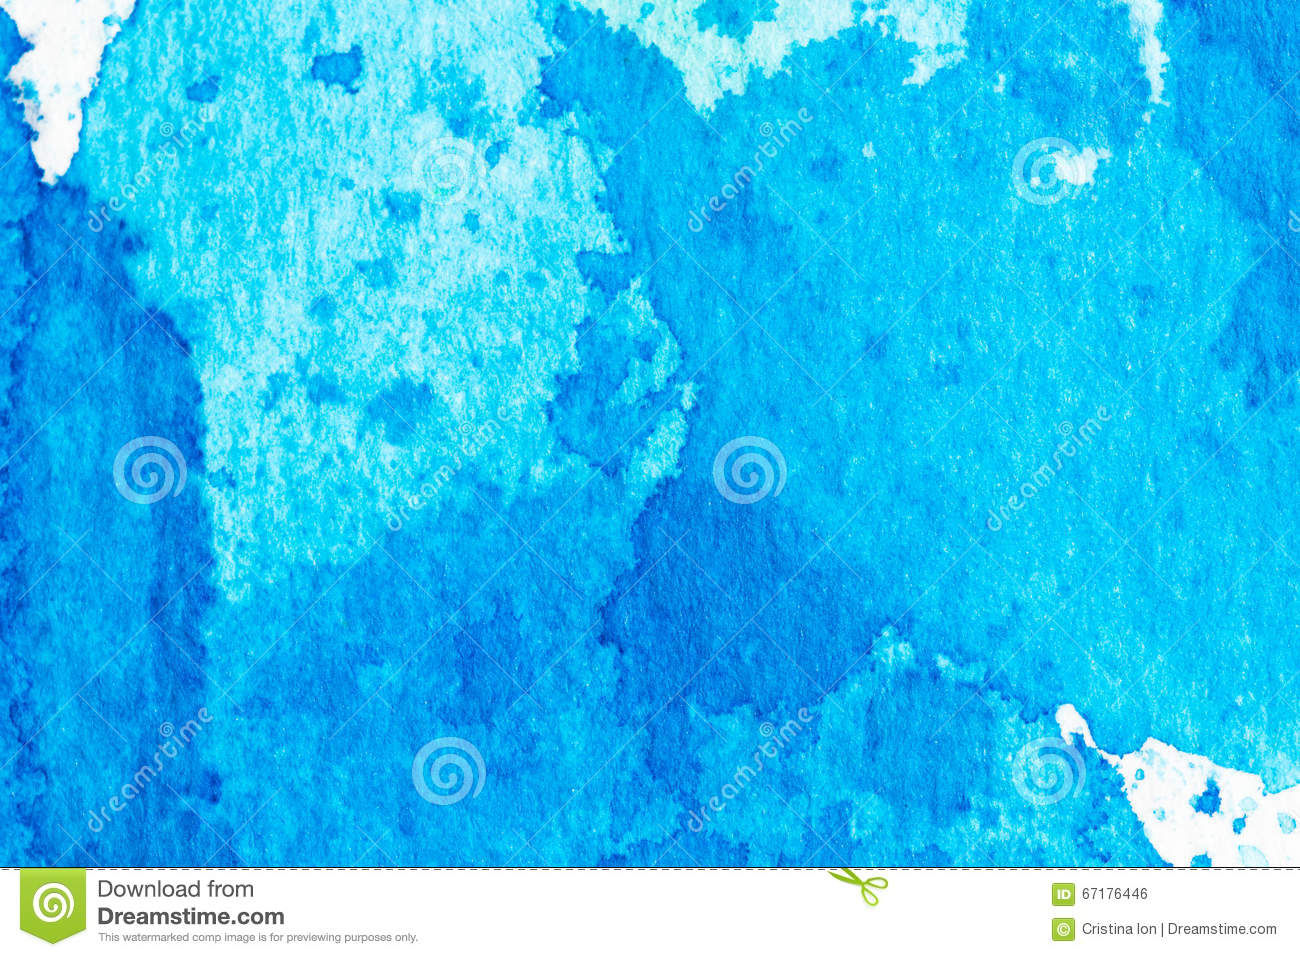 Watercolor blue abstract splash background